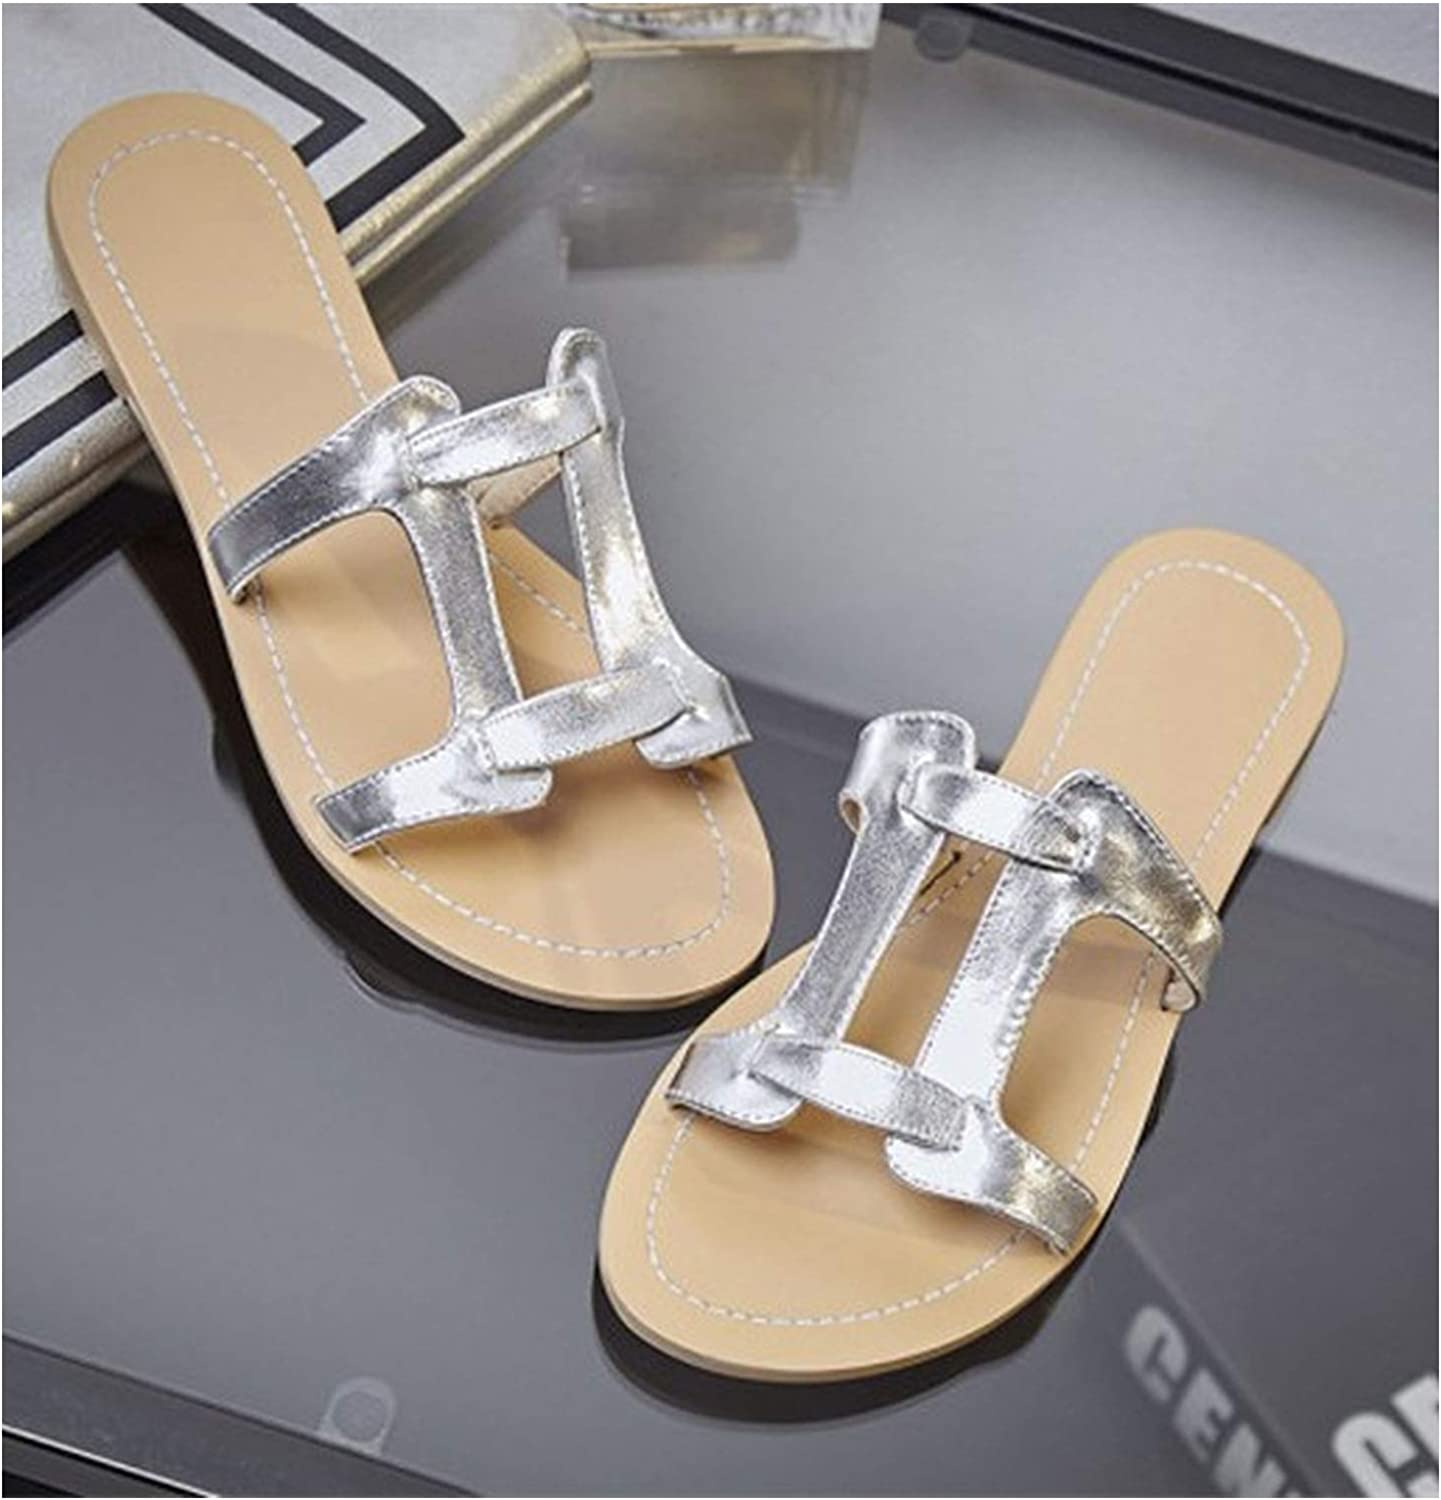 Longbao Women 2019 New Classic Design Quality Cow Leather Female Sandals Comfortable shoes Woman